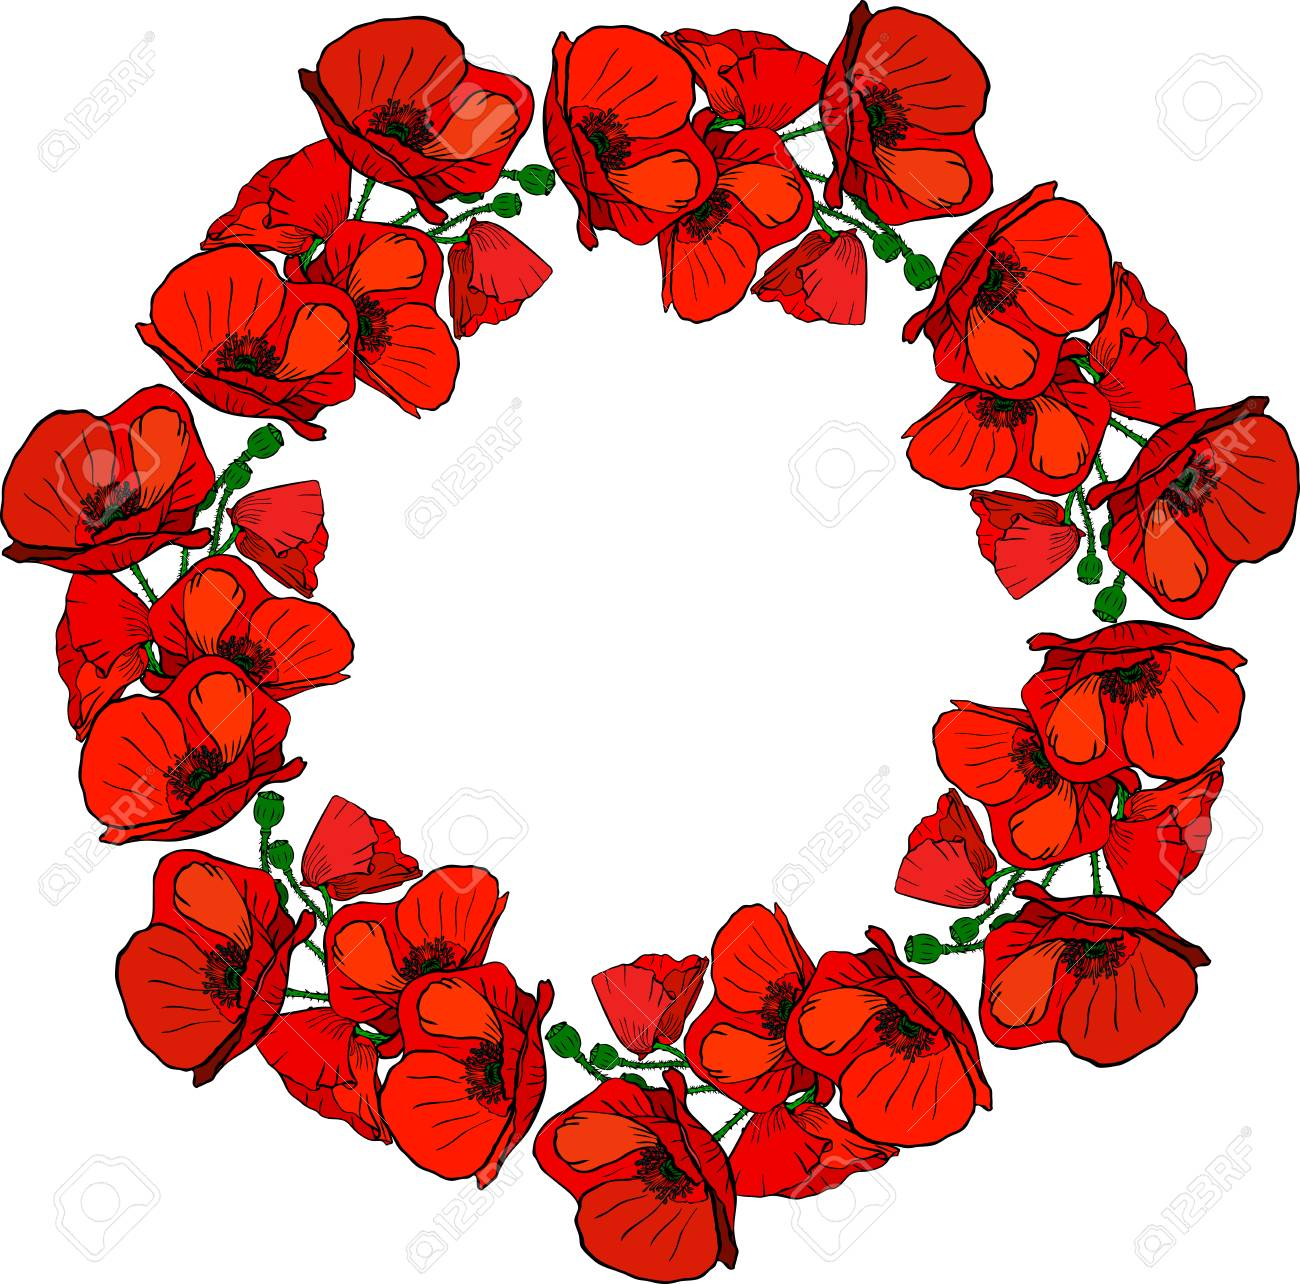 A Round Wreath Of Flowering Red Poppies And Green Stems Isolated